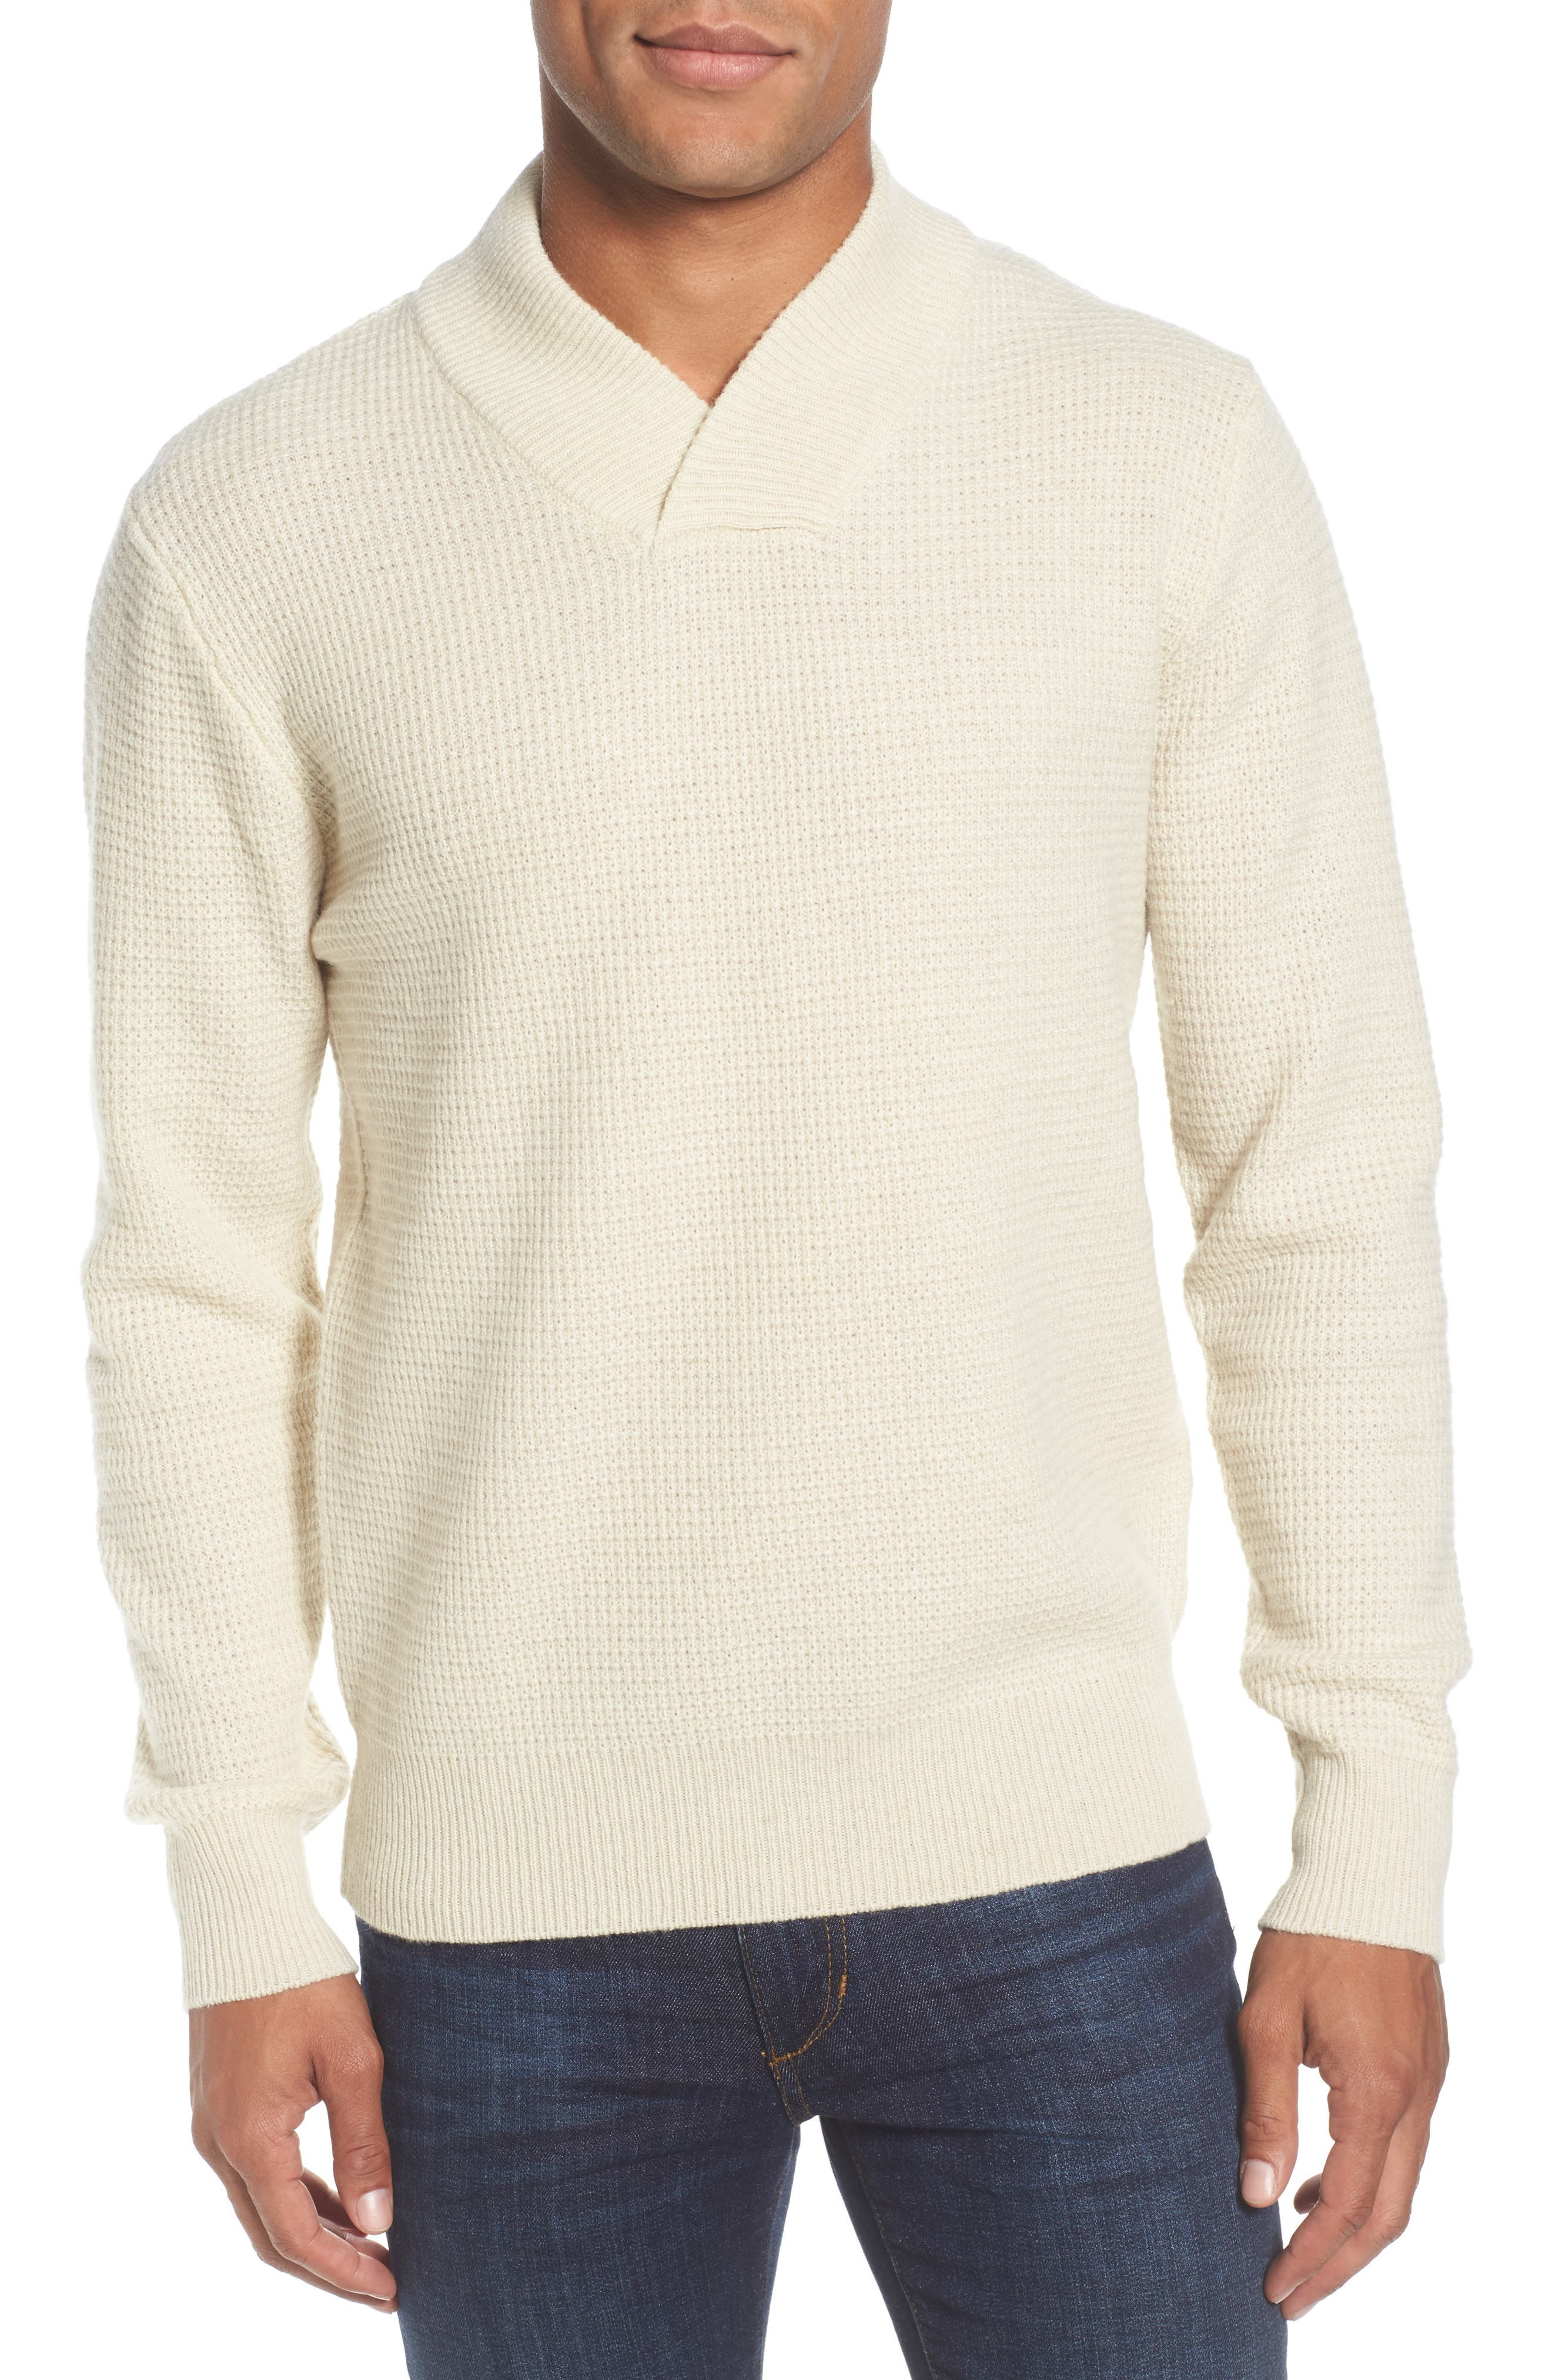 Schott Nyc Waffle Knit Thermal Wool Blend Pullover, White